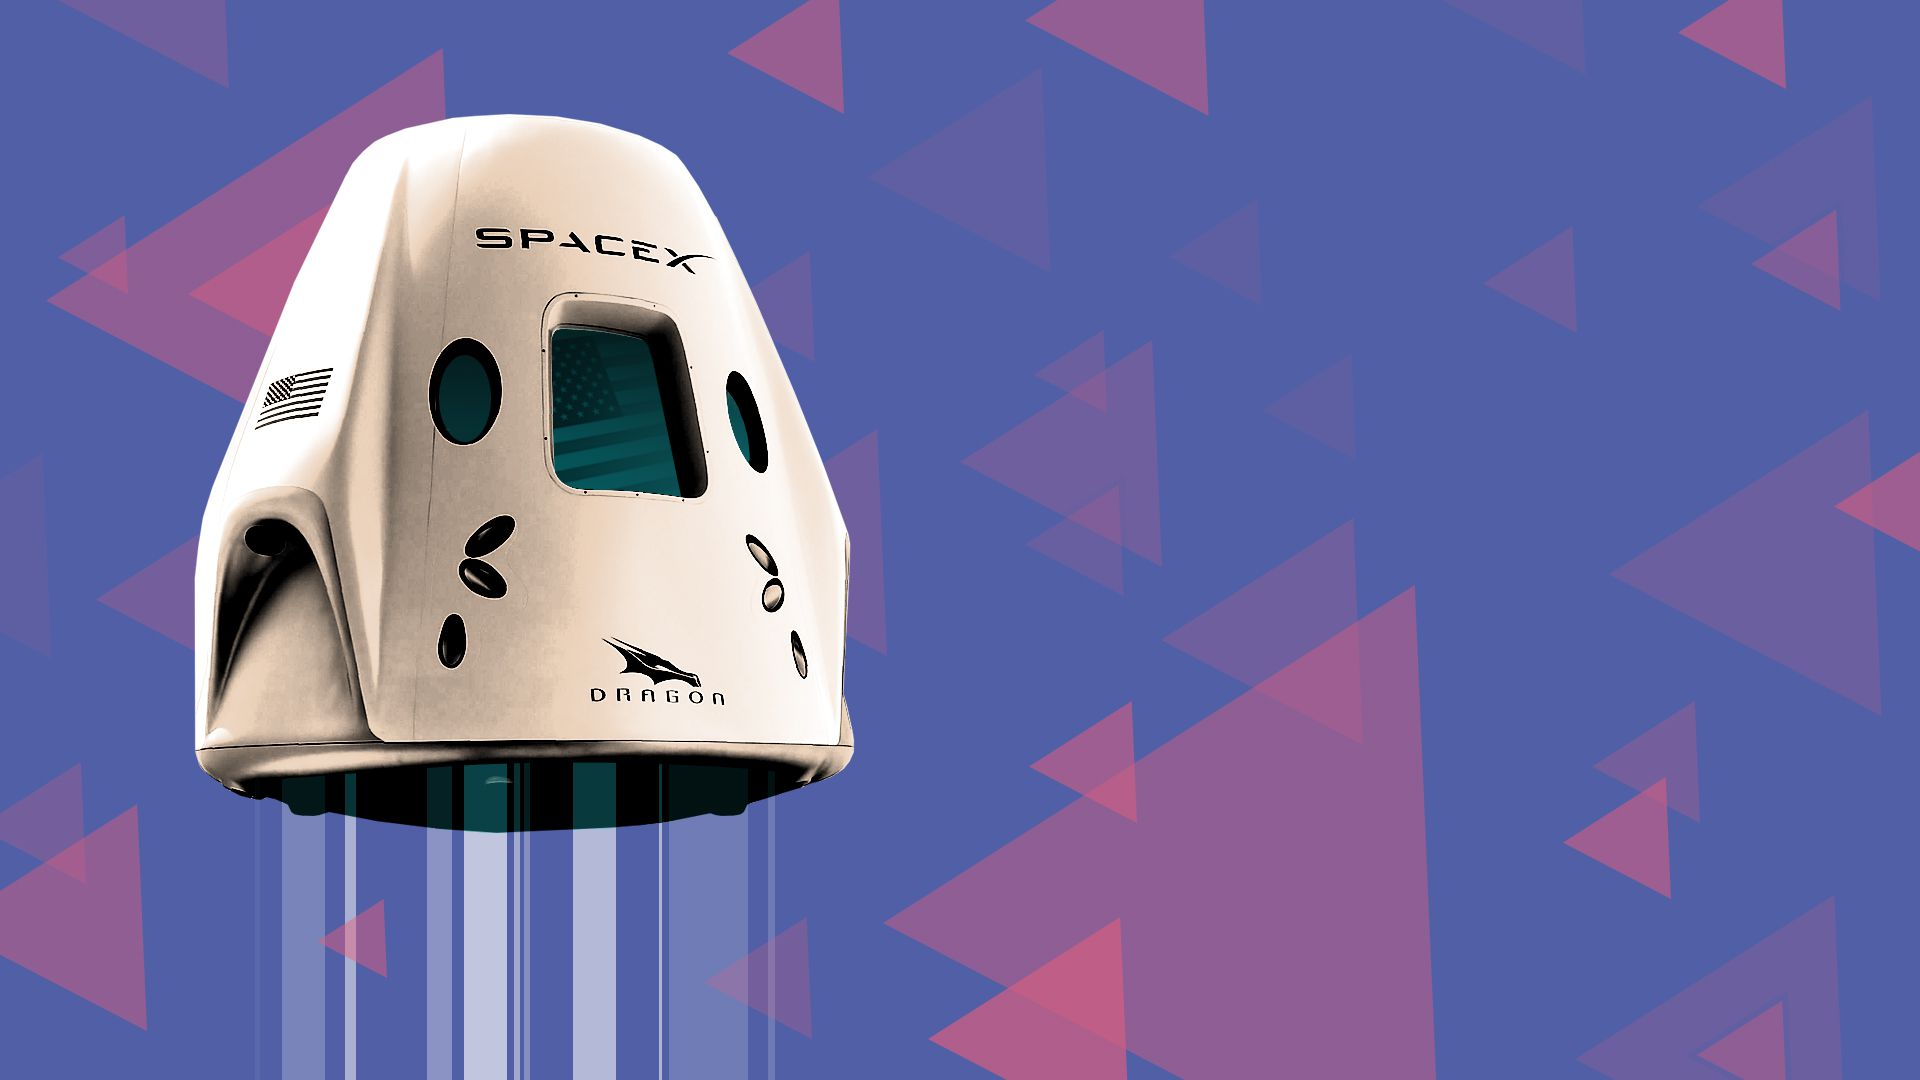 Illustration of a SpaceX Crew Dragon spacecraft.